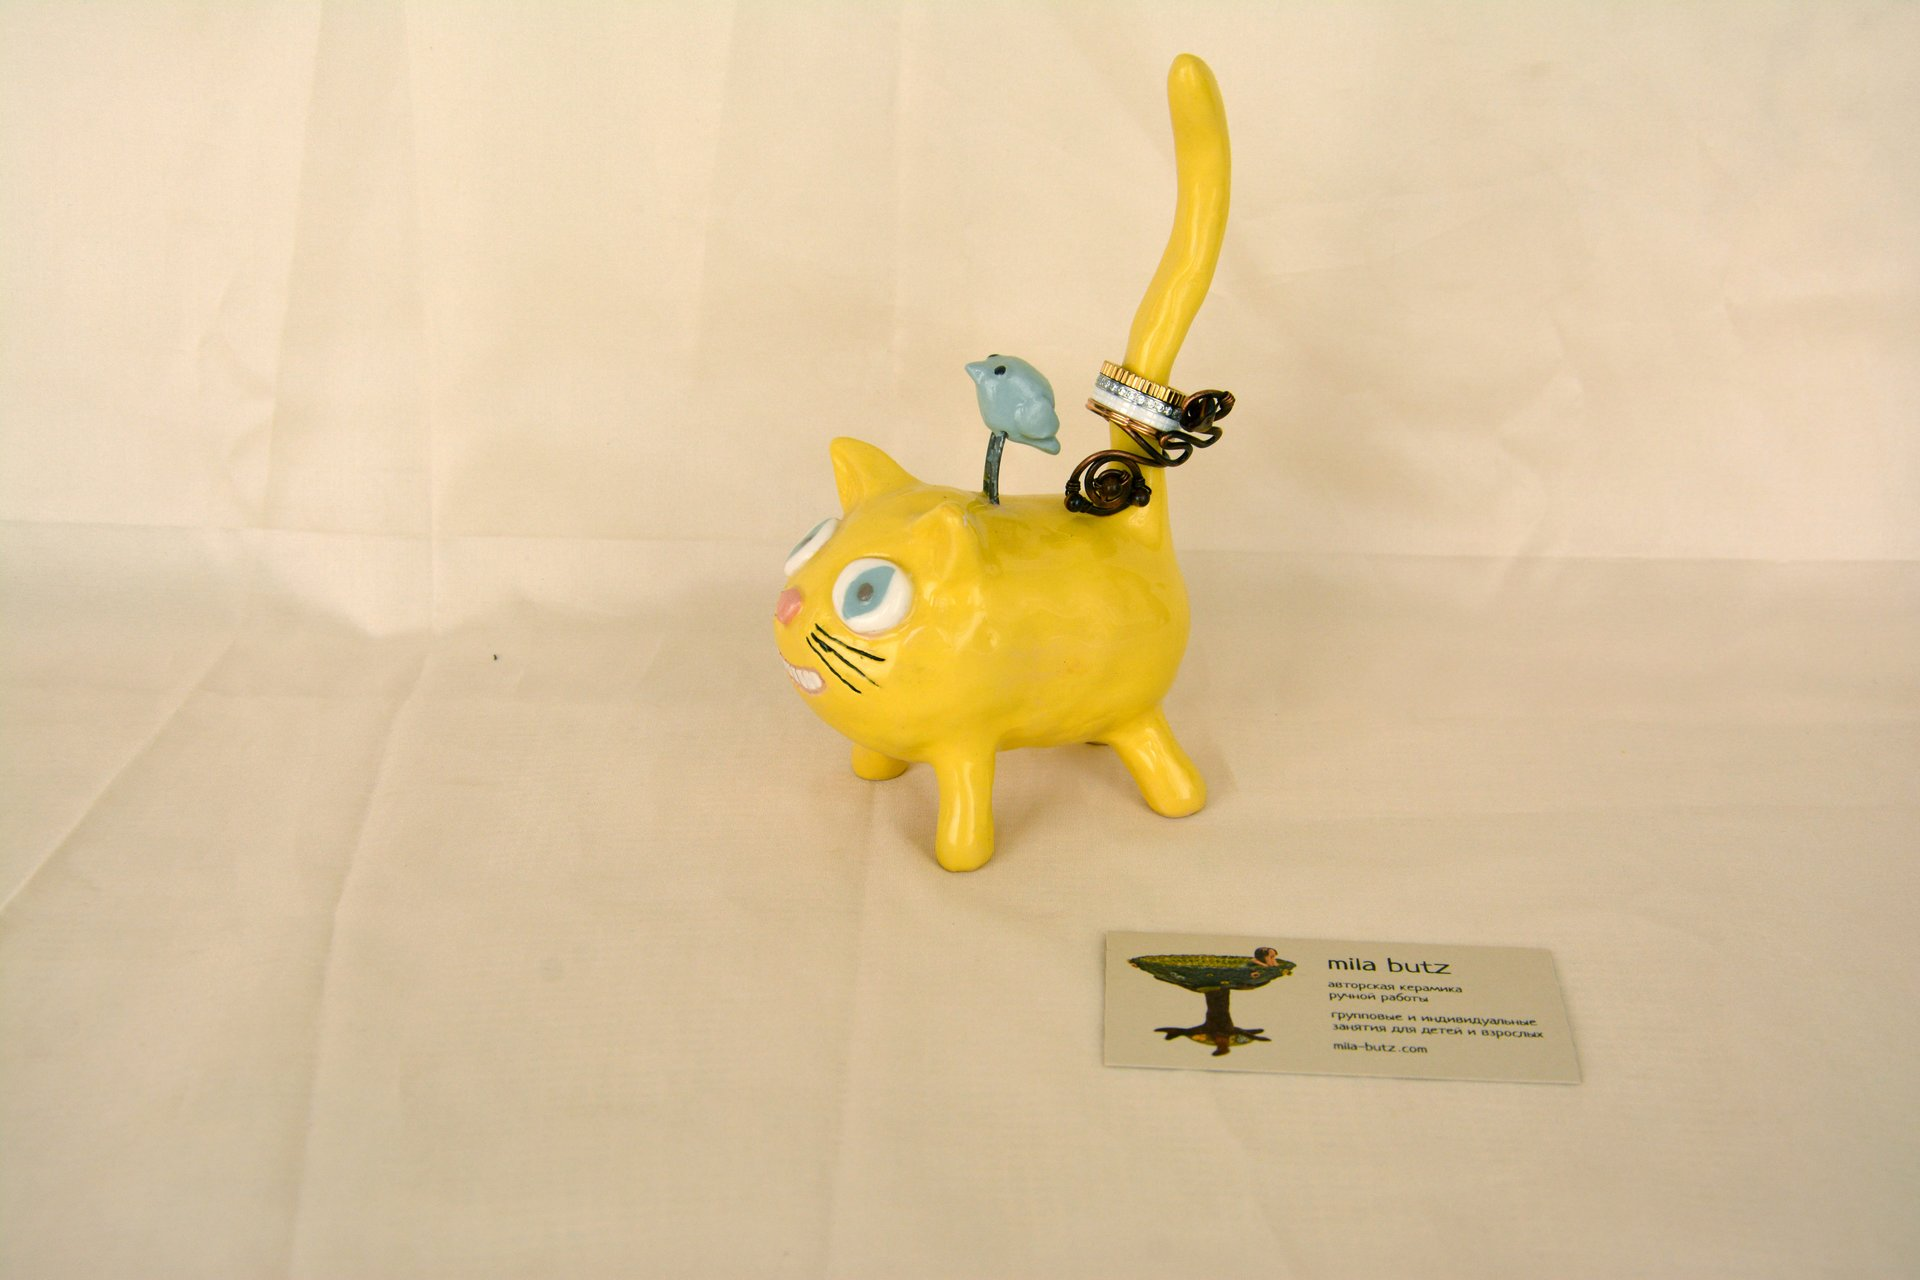 Cat «Cheshire smile» - Ceramic ring's holders, height - 15 cm., photo 2 of 3.